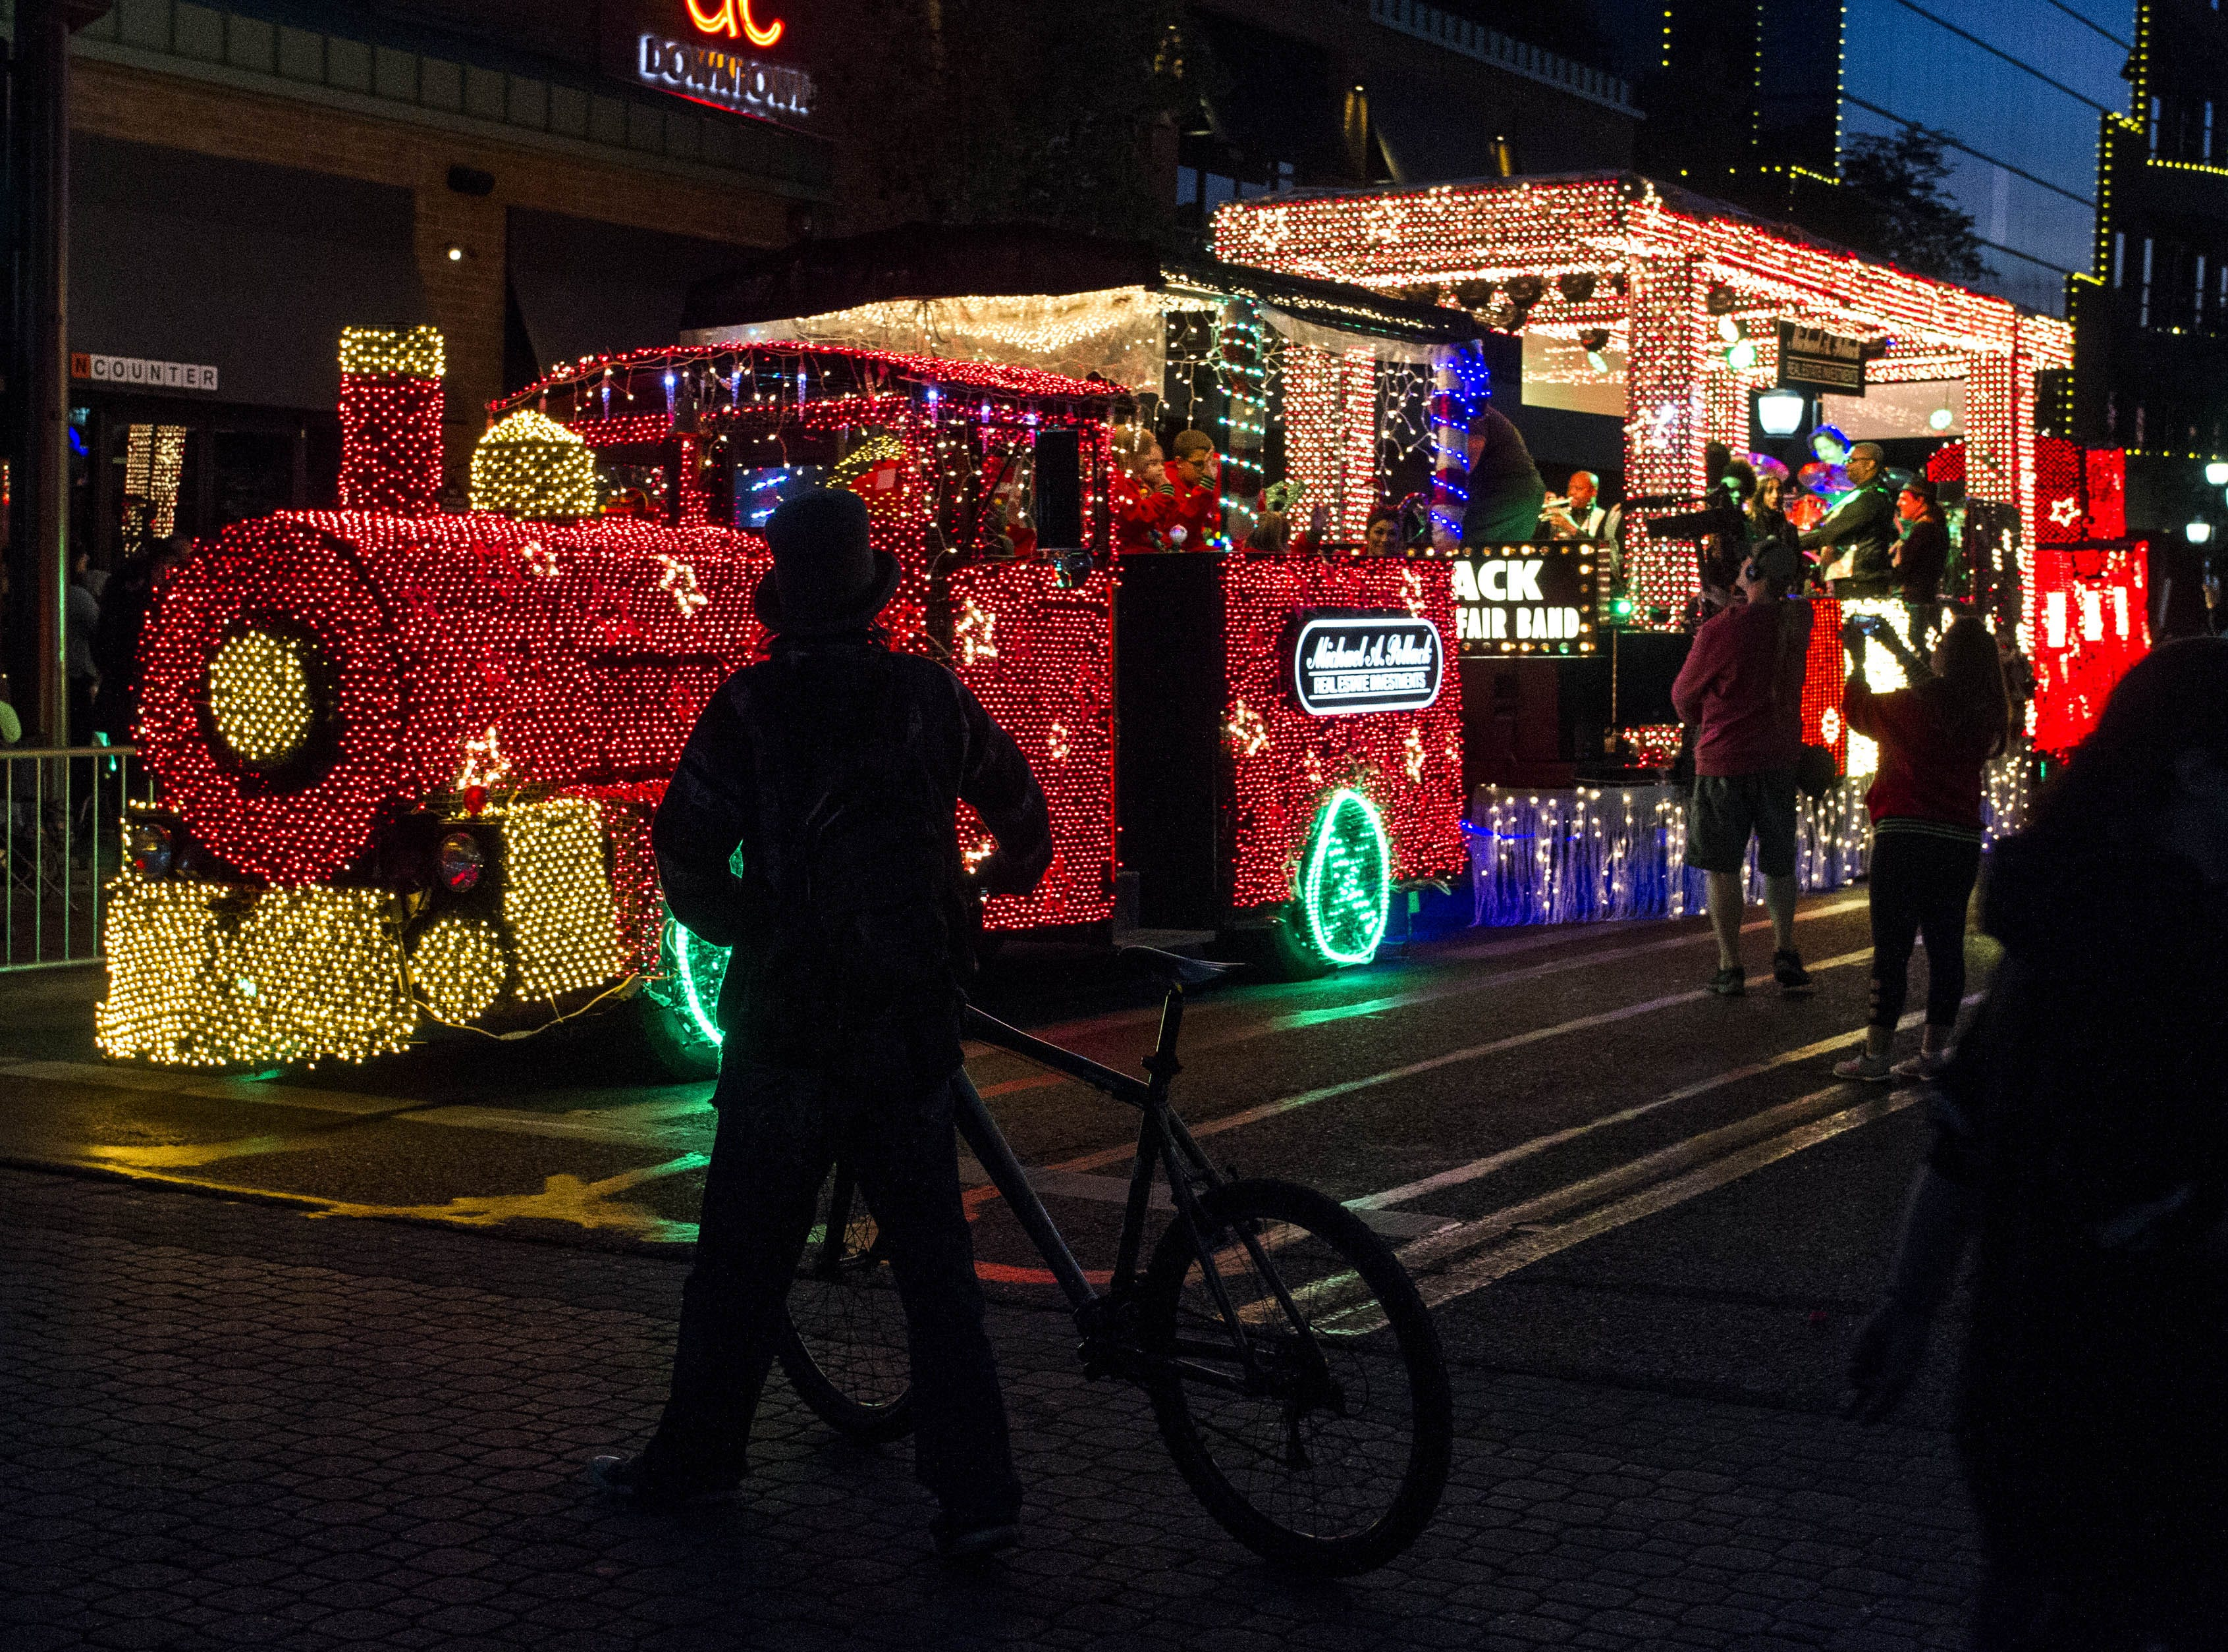 Onlookers check out Michael A. Pollack's train float during the 2018 Fantasy of Lights Parade on Mill Ave. in downtown Tempe Friday, Nov. 23, 2018.